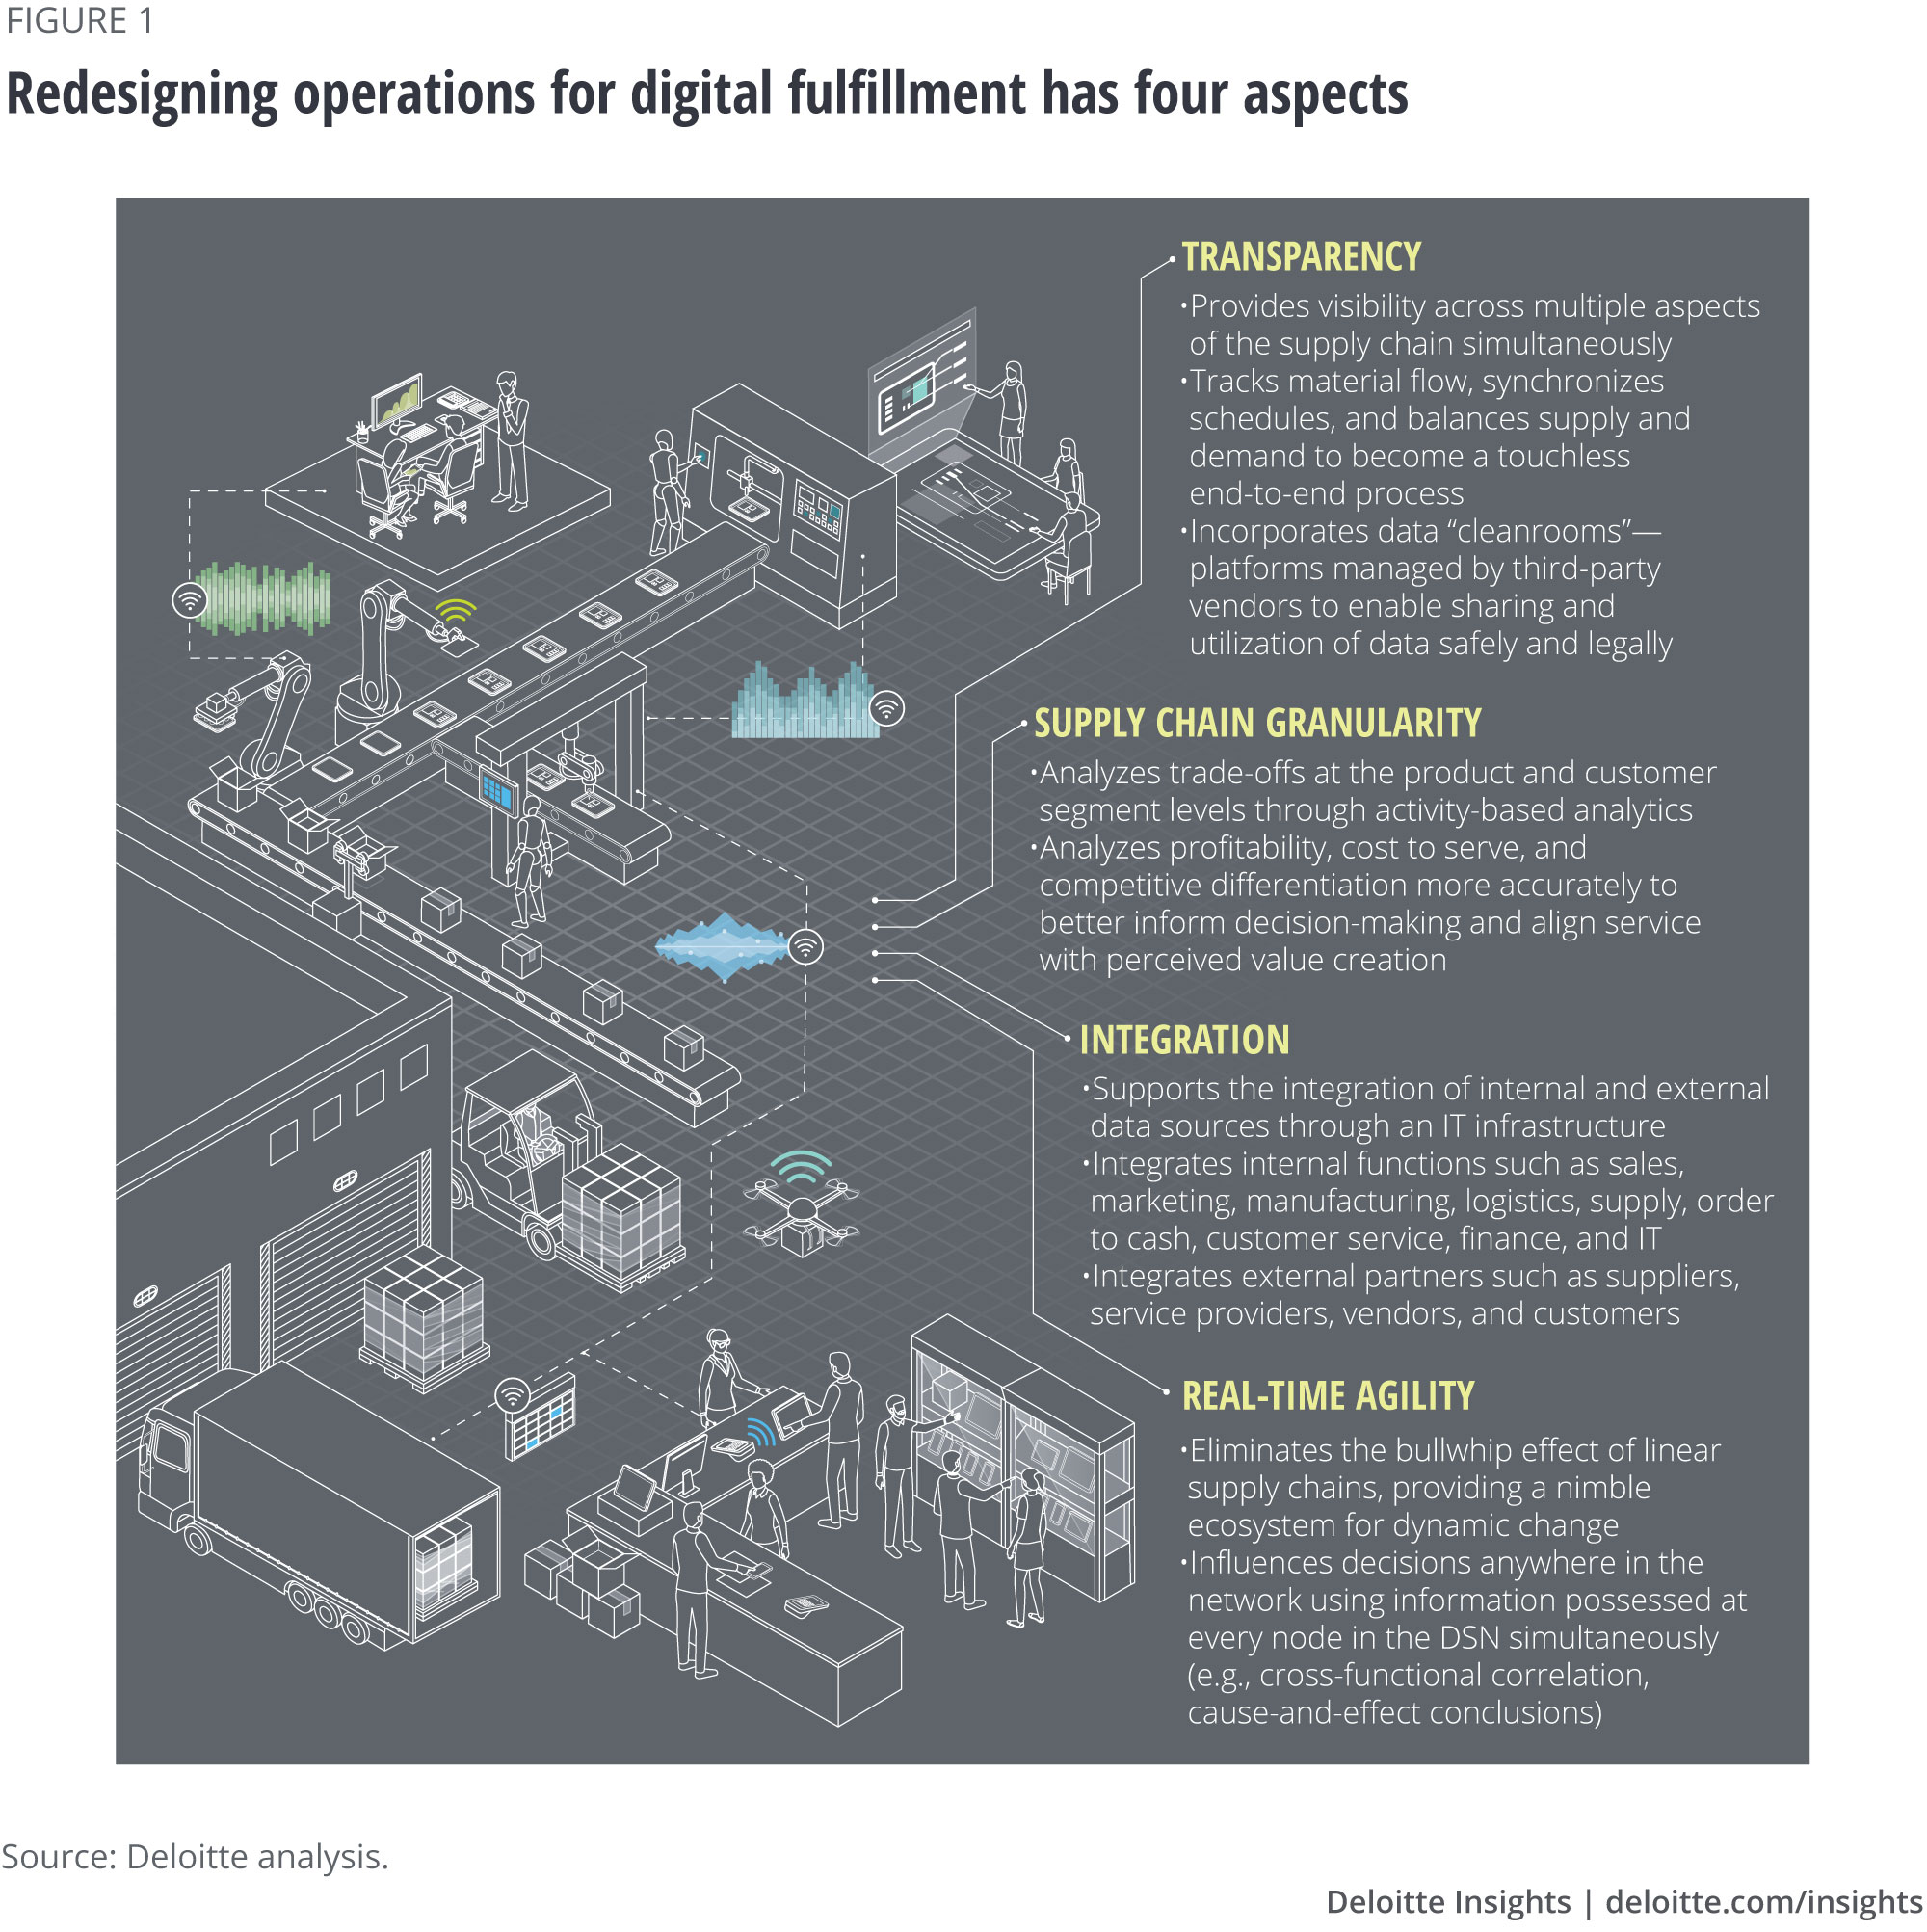 Redesigning operations for digital fulfillment has four aspects